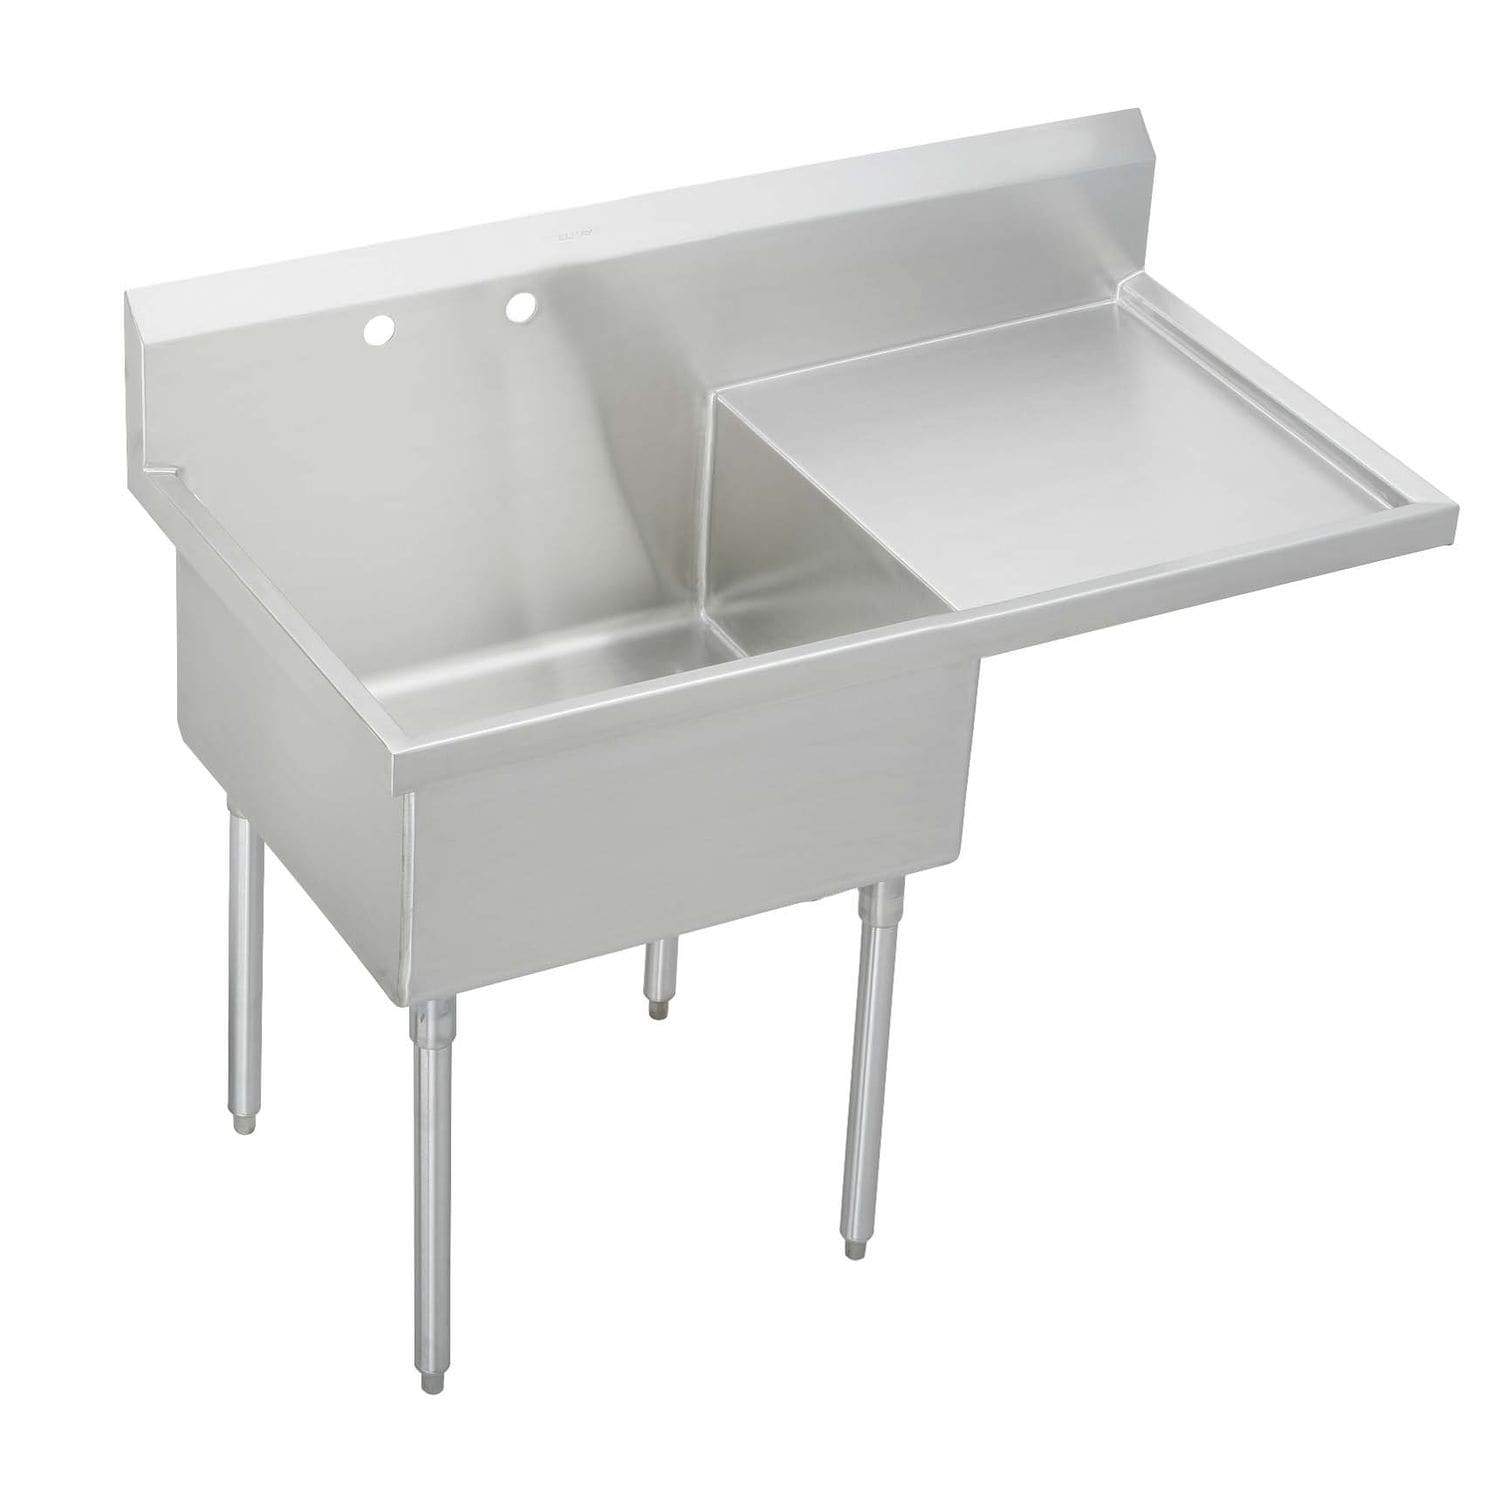 Stainless Steel Kitchen Sink Cabinet With Legs For